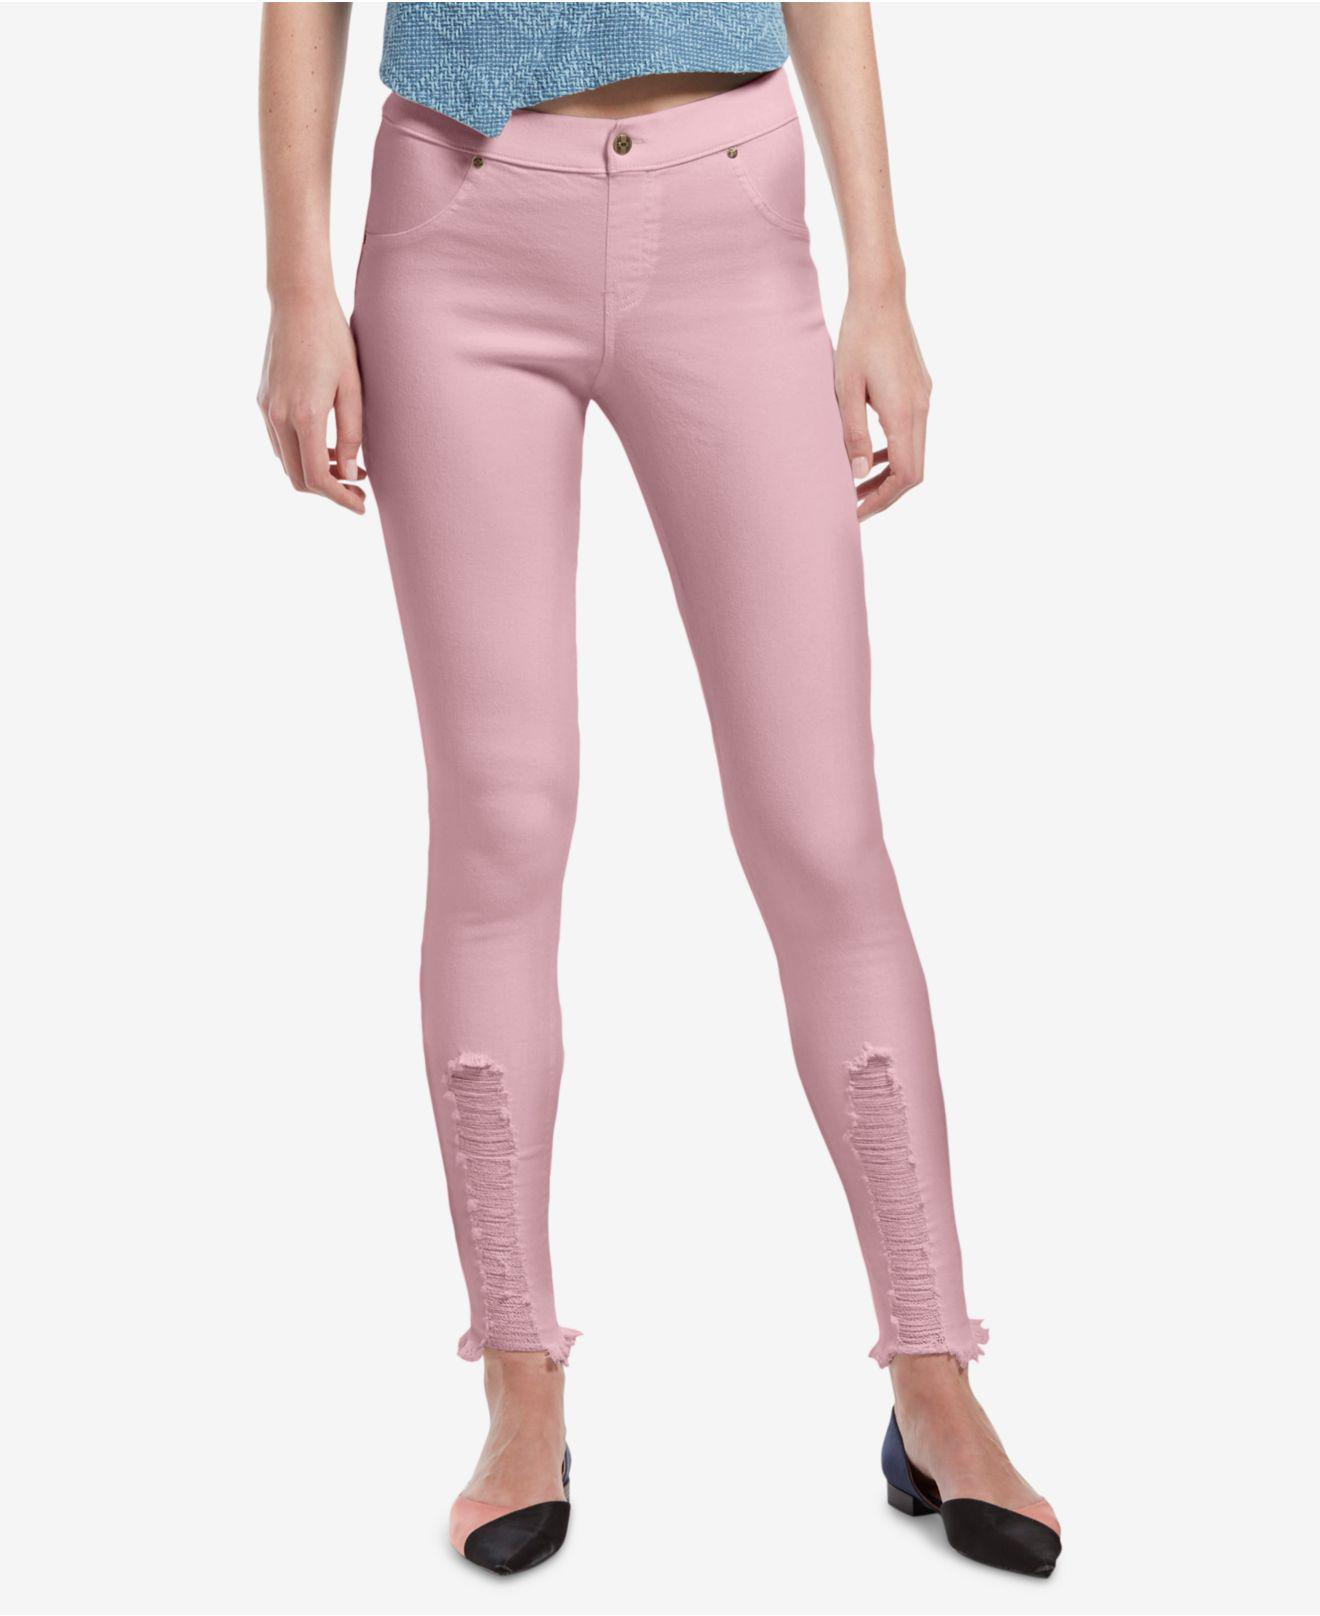 5b8749fc099cc3 Lyst - Hue ® Ripped Denim Leggings in Pink